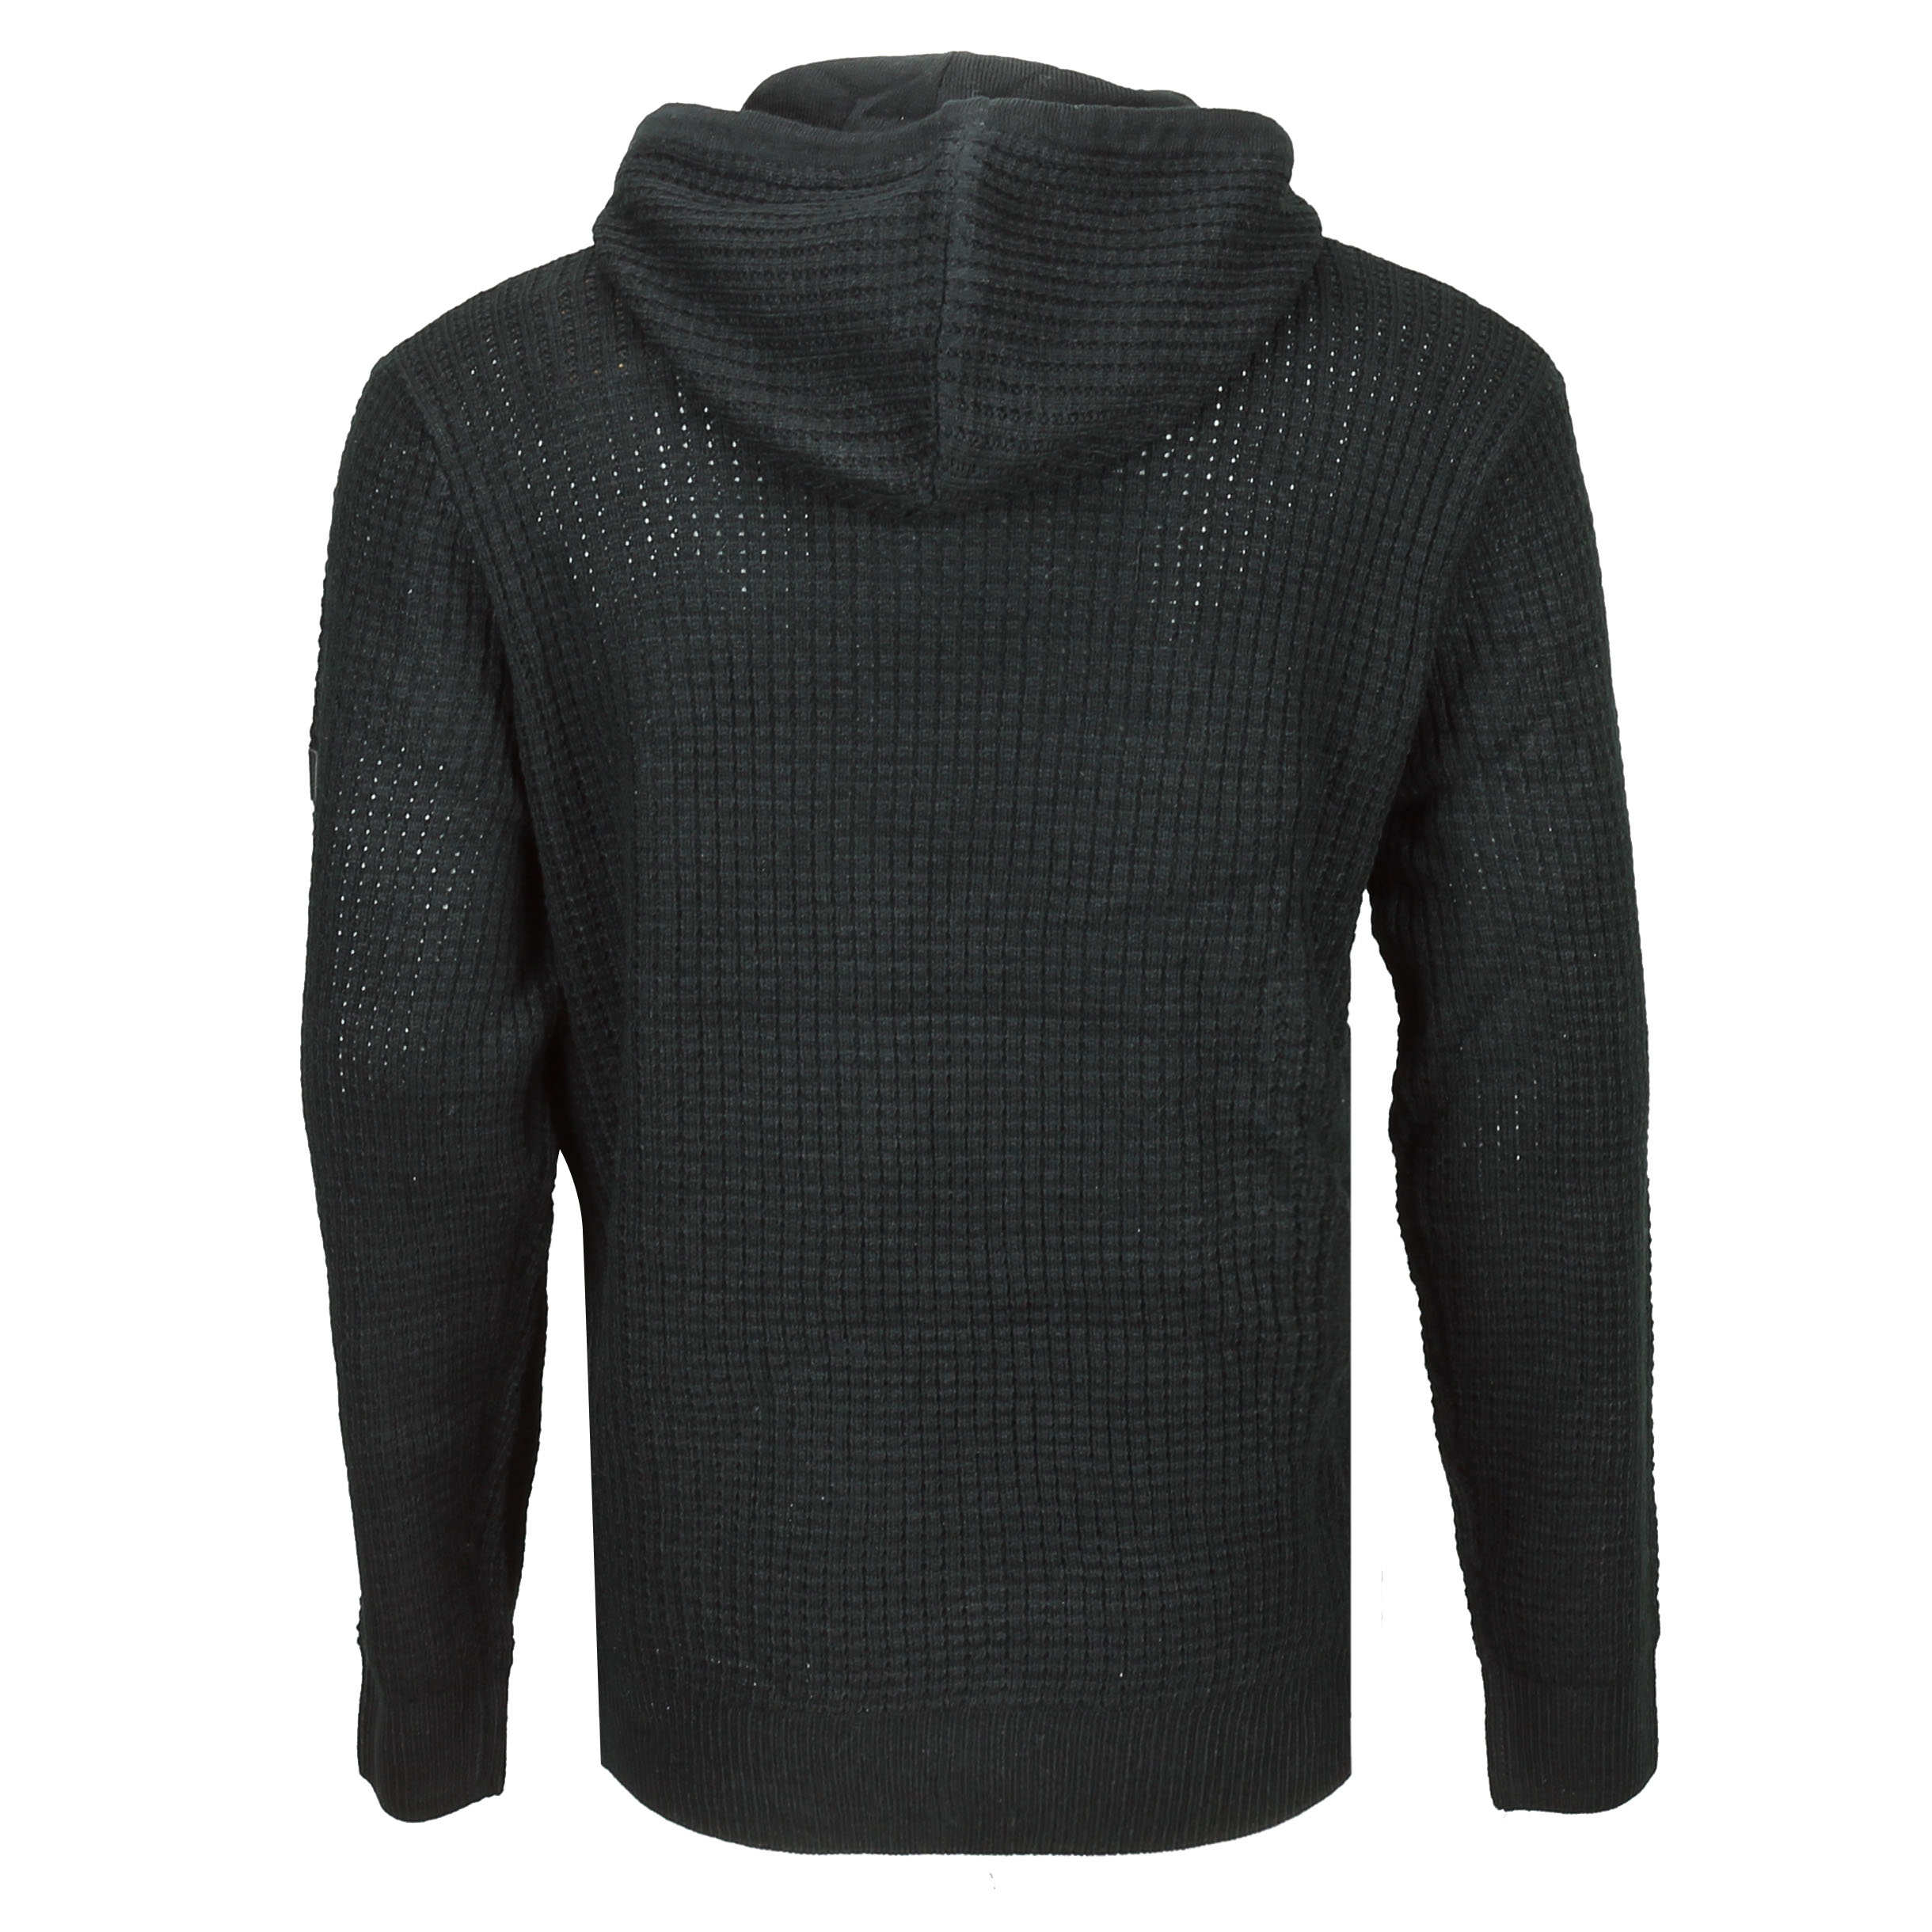 New-Mens-Soul-Star-Retro-Cable-Knit-Hood-Jumper-Long-Line-Hoody-Sweater-Pullover thumbnail 5